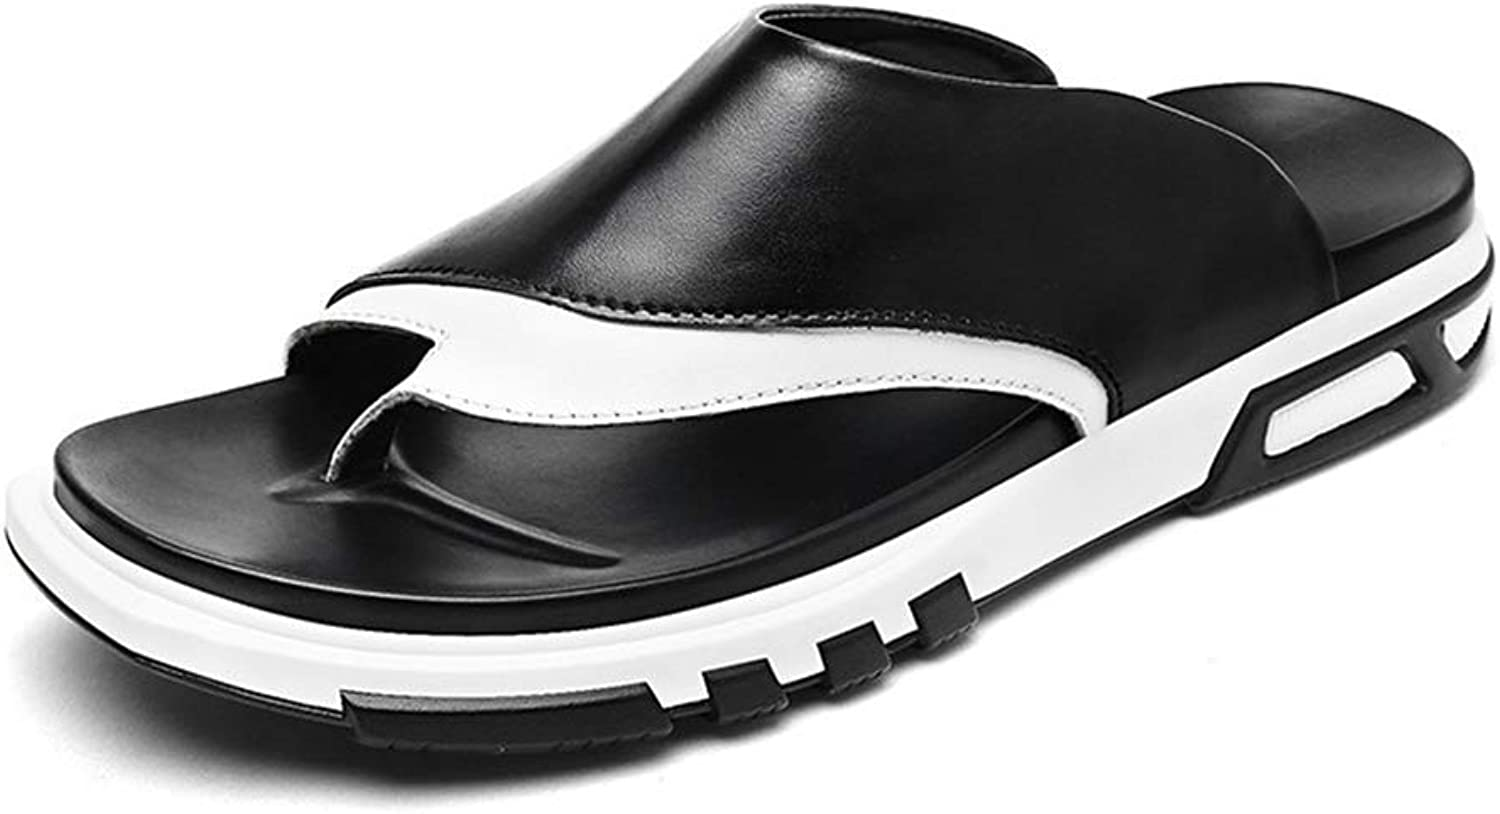 ZHRUI Men Flip Flops Casual Leather shoes Summer Fashion Outdoor Beach Sandals Men Slippers (color   Black, Size   6.5=40 EU)